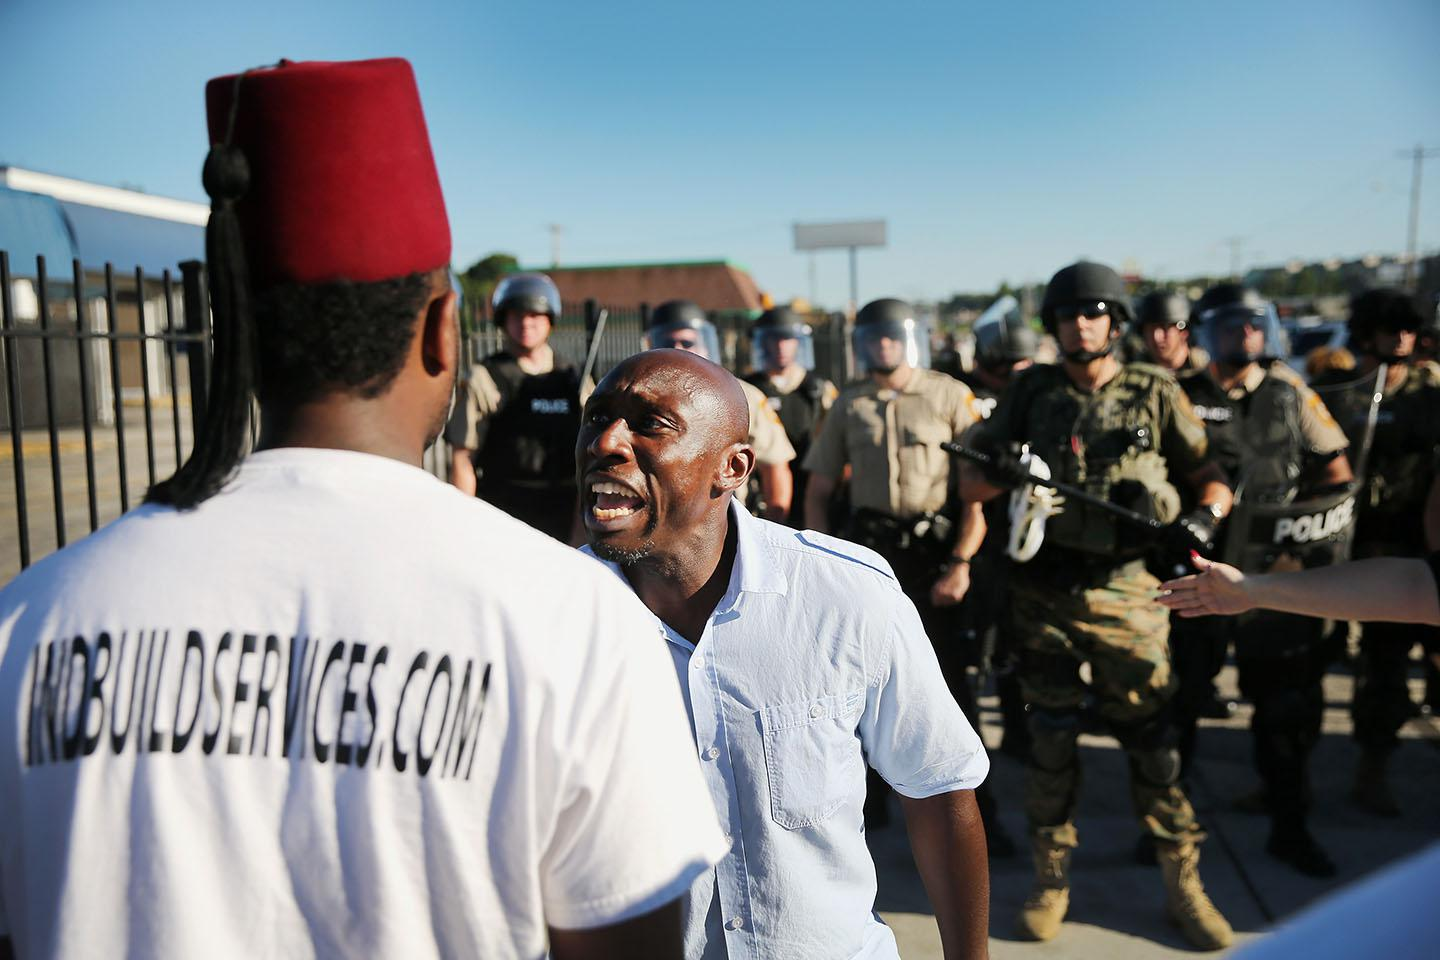 A demonstrator, protesting the shooting death of teenager Michael Brown, pleads with another to walk away after being ordered off the street by police on August 13, 2014 in Ferguson, Missouri.